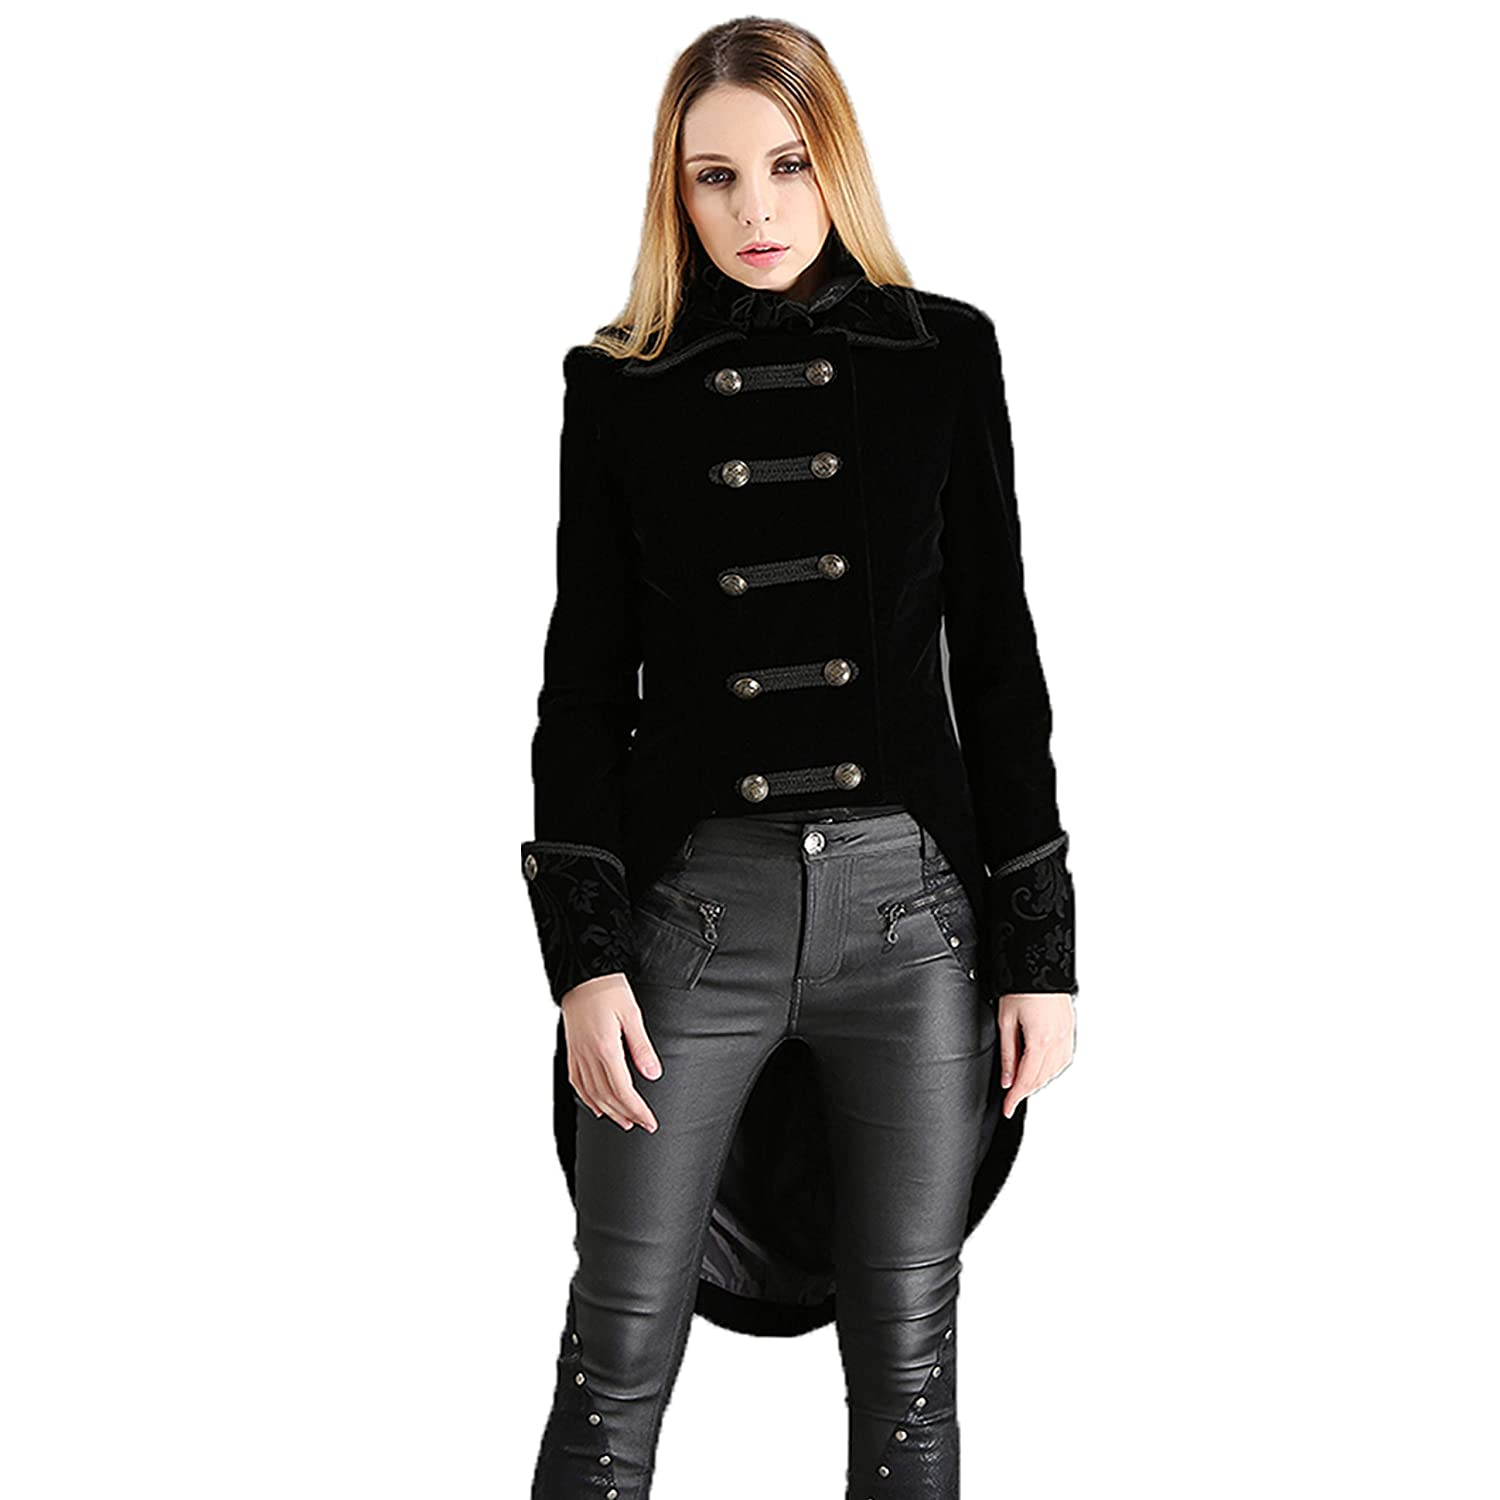 Lady Admiral Black Velvet Double-Breasted Swallowtail Costume Coat - DeluxeAdultCostumes.com